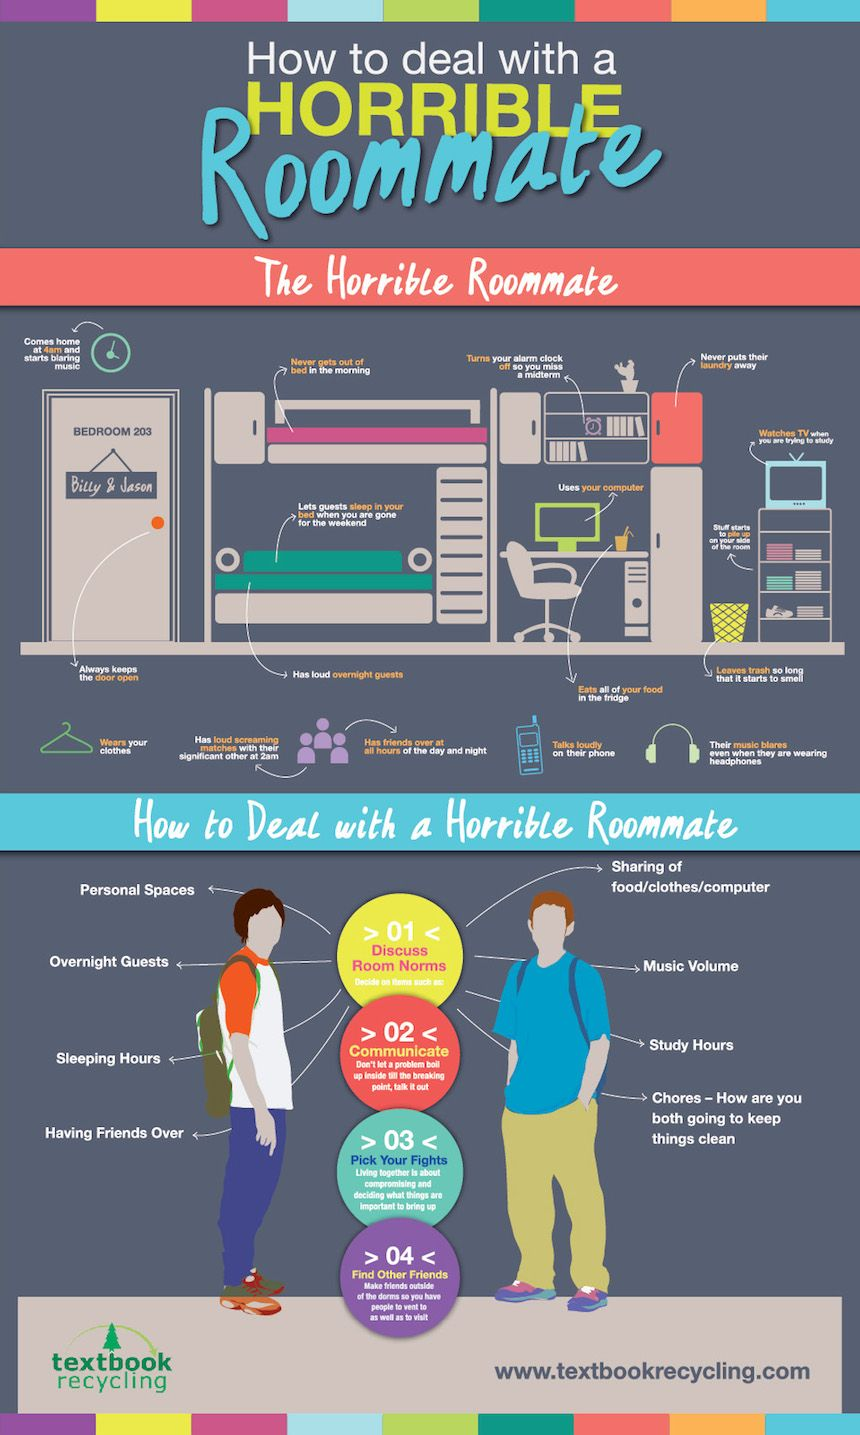 How To Deal With A Horrible Roommate Infographic Horribleroommate Roommate University Dorms Roommate Student House Dorm Hacks